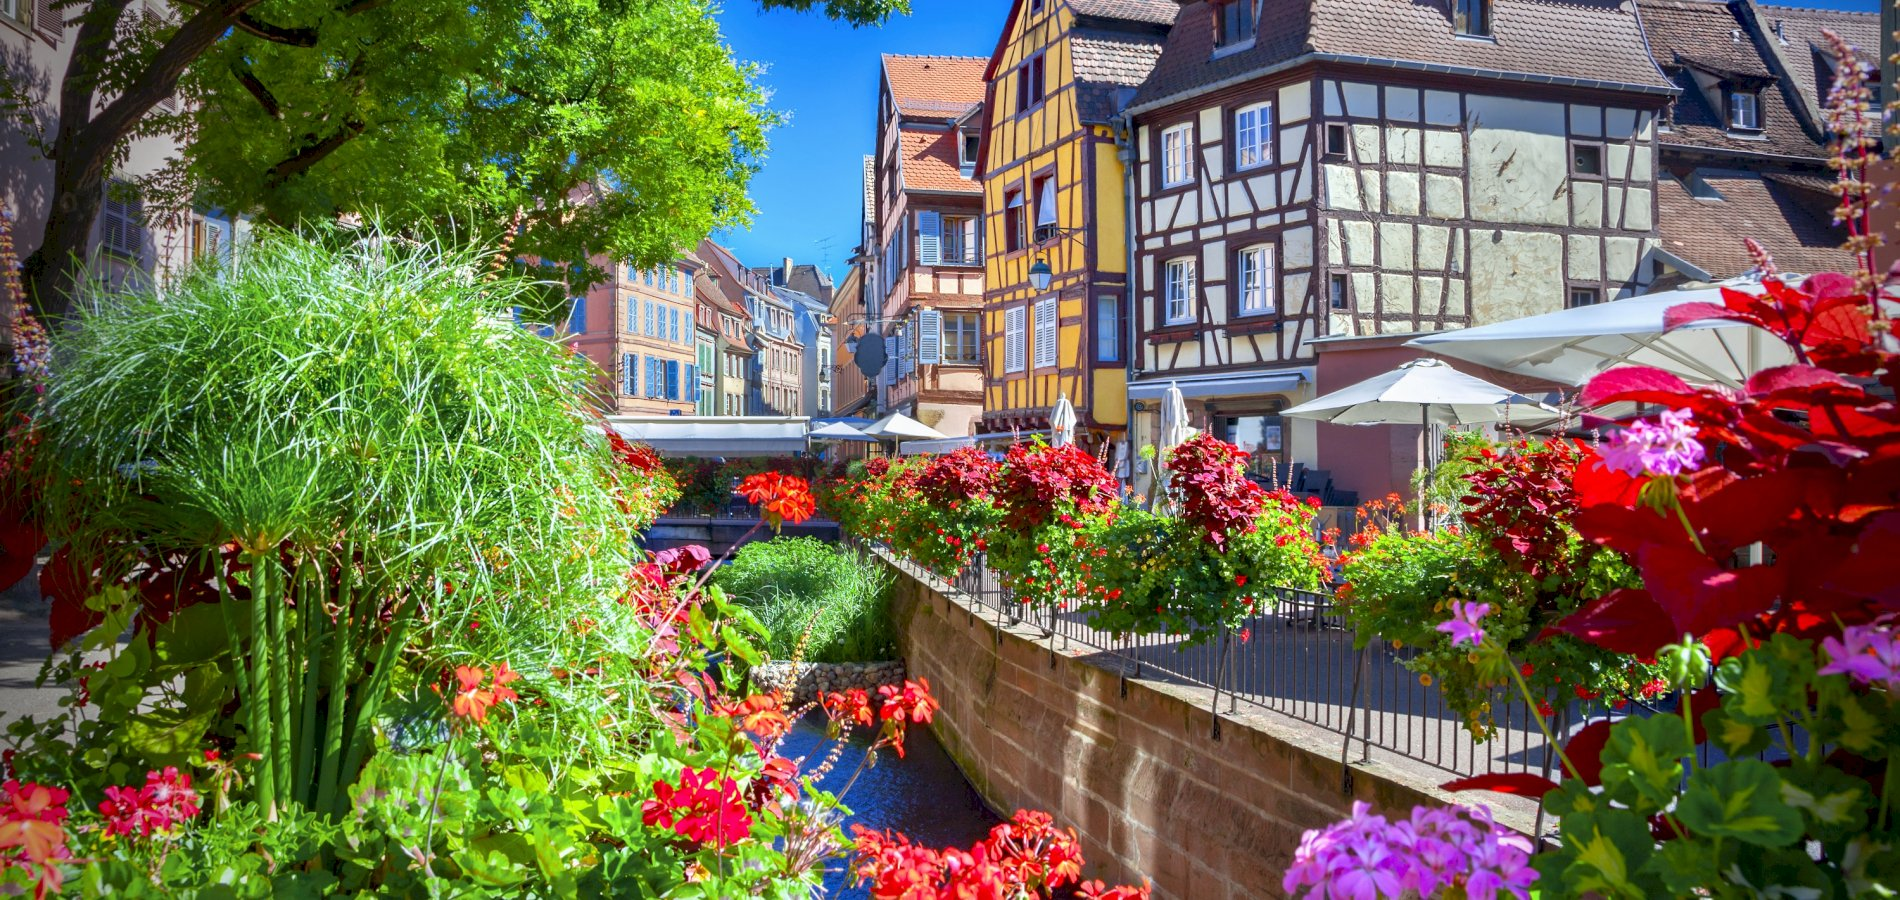 Ophorus Tours - Pearls of Alsace Private Full Day Trip from Strasbourg for 2 persons